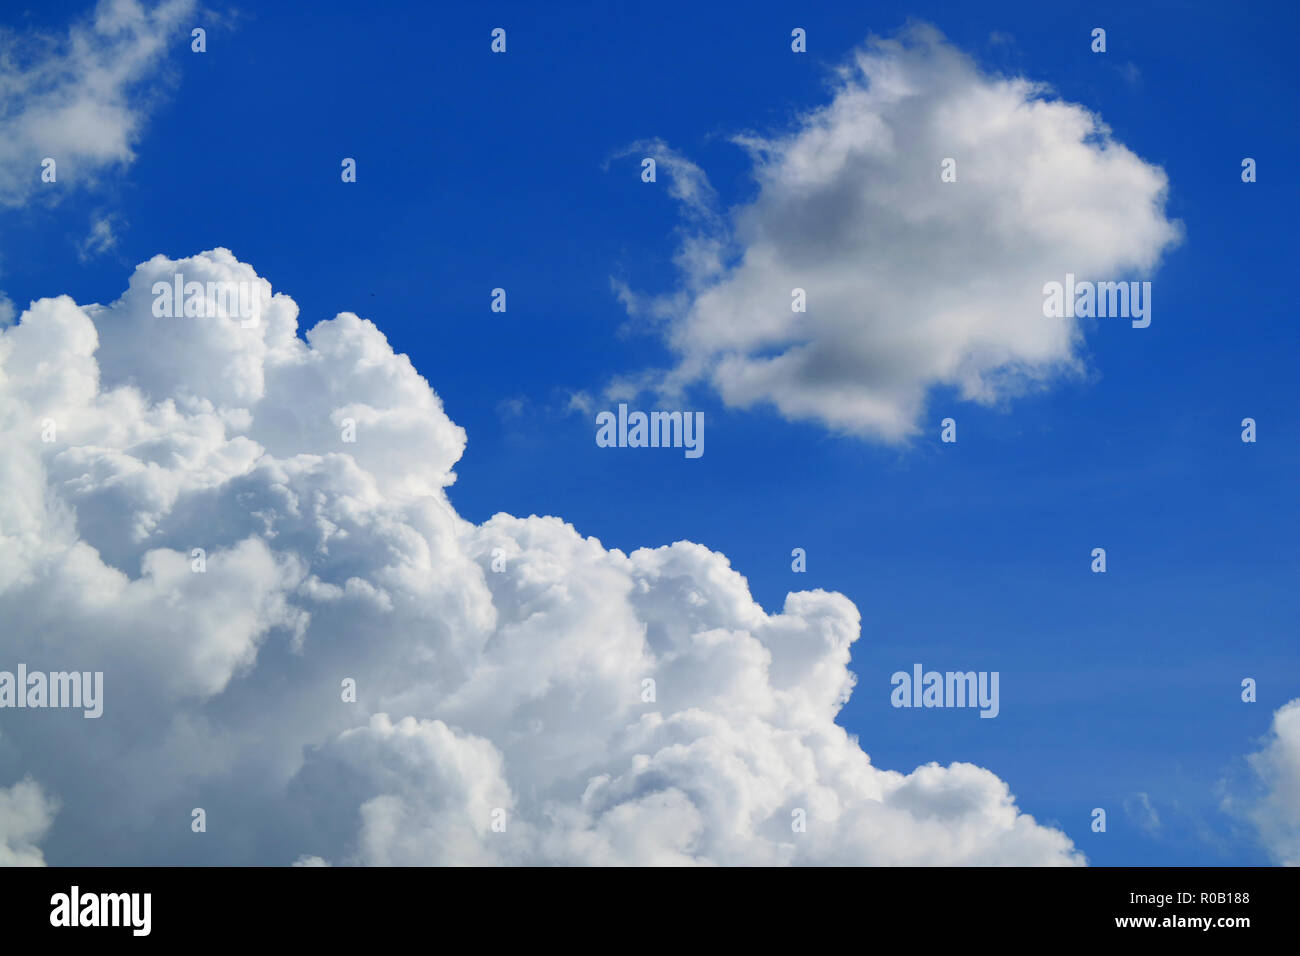 Pure White Fluffy Cumulus Clouds Floating on Vivid Blue Sky - Stock Image